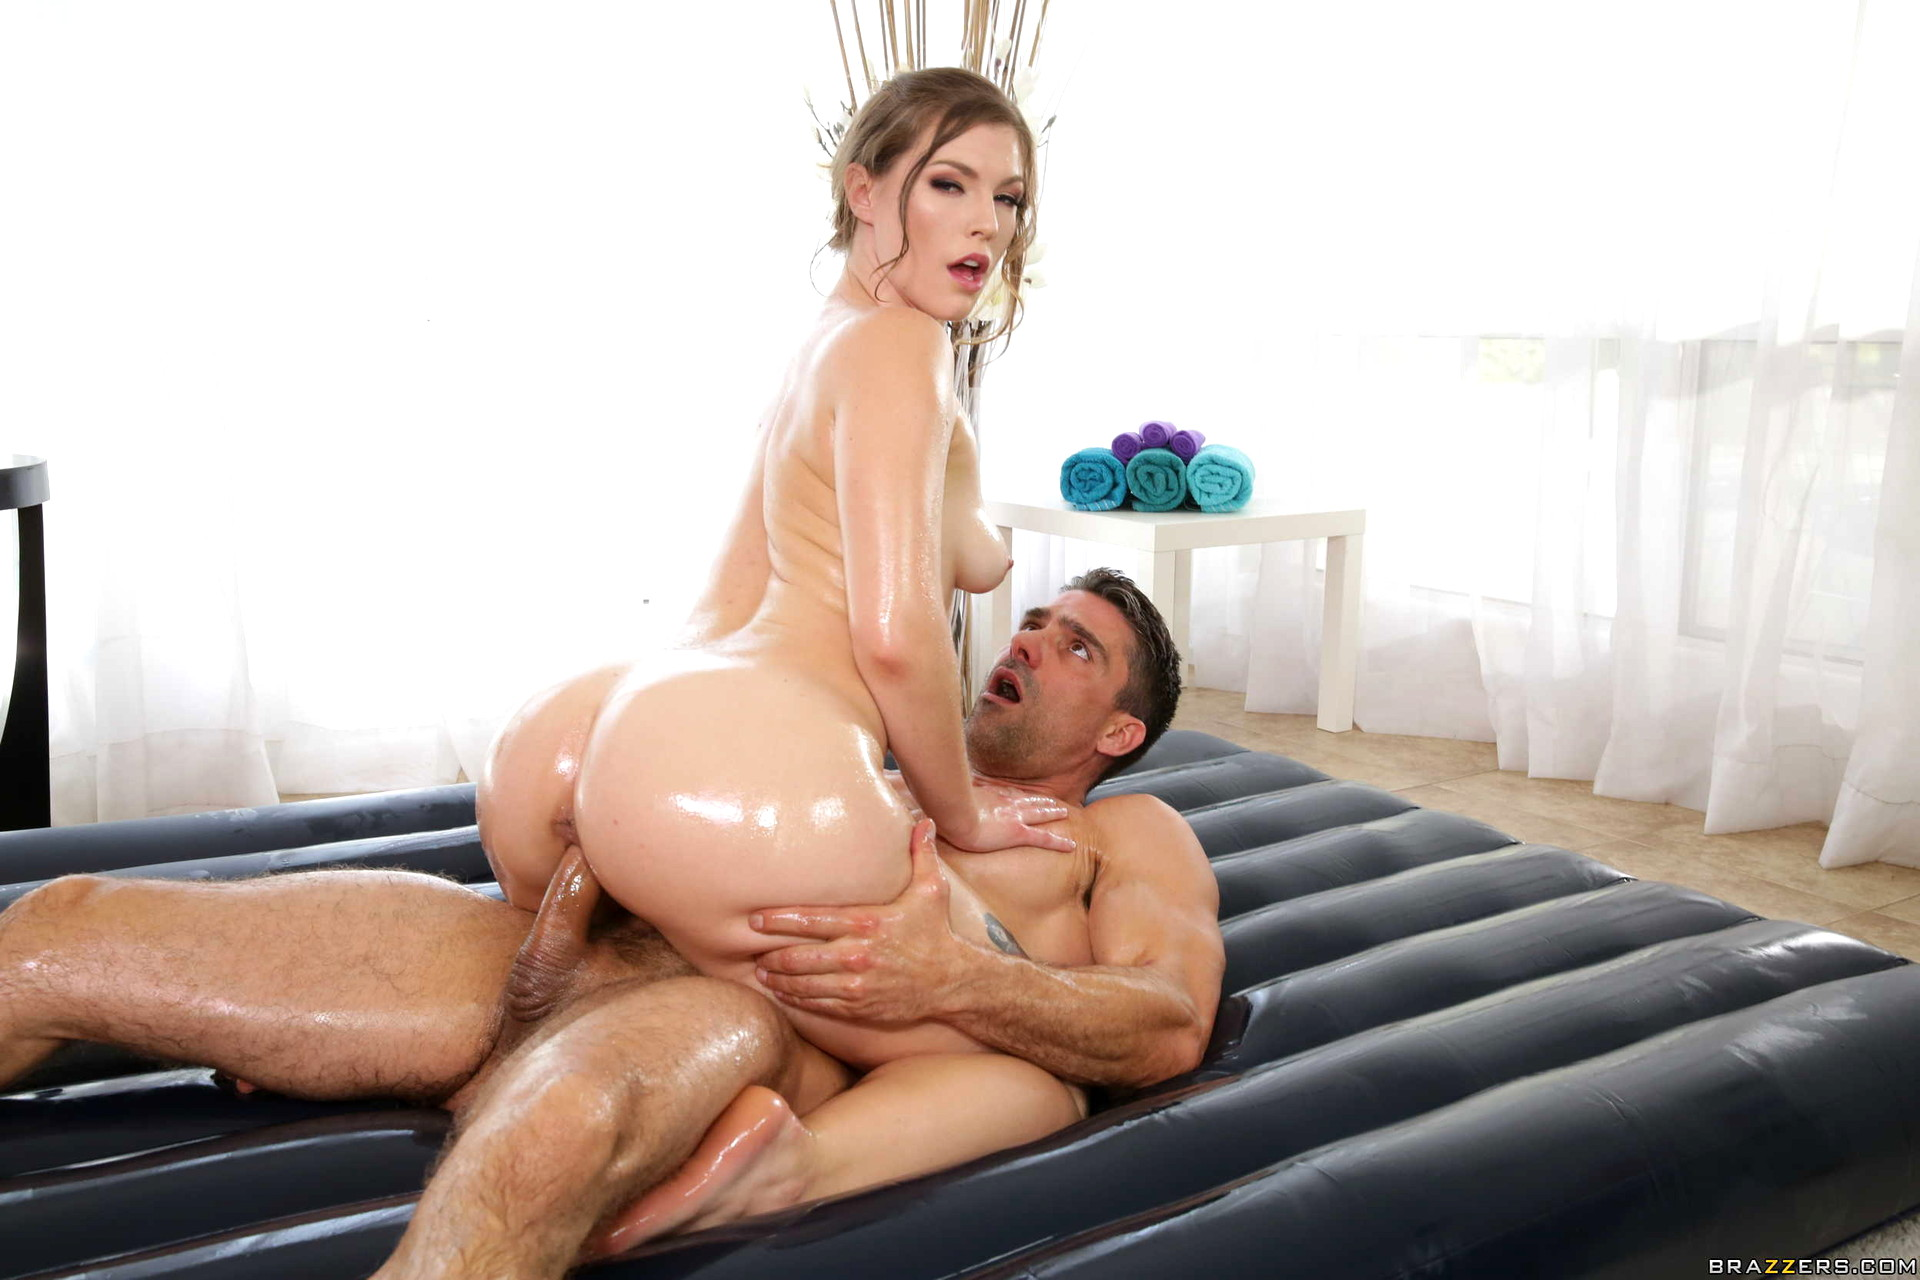 Brazzers Dirty Masseur Rub And Fuck Thy Neighbor Scene Starring Sheridan Love And Keiran Lee Club Hd